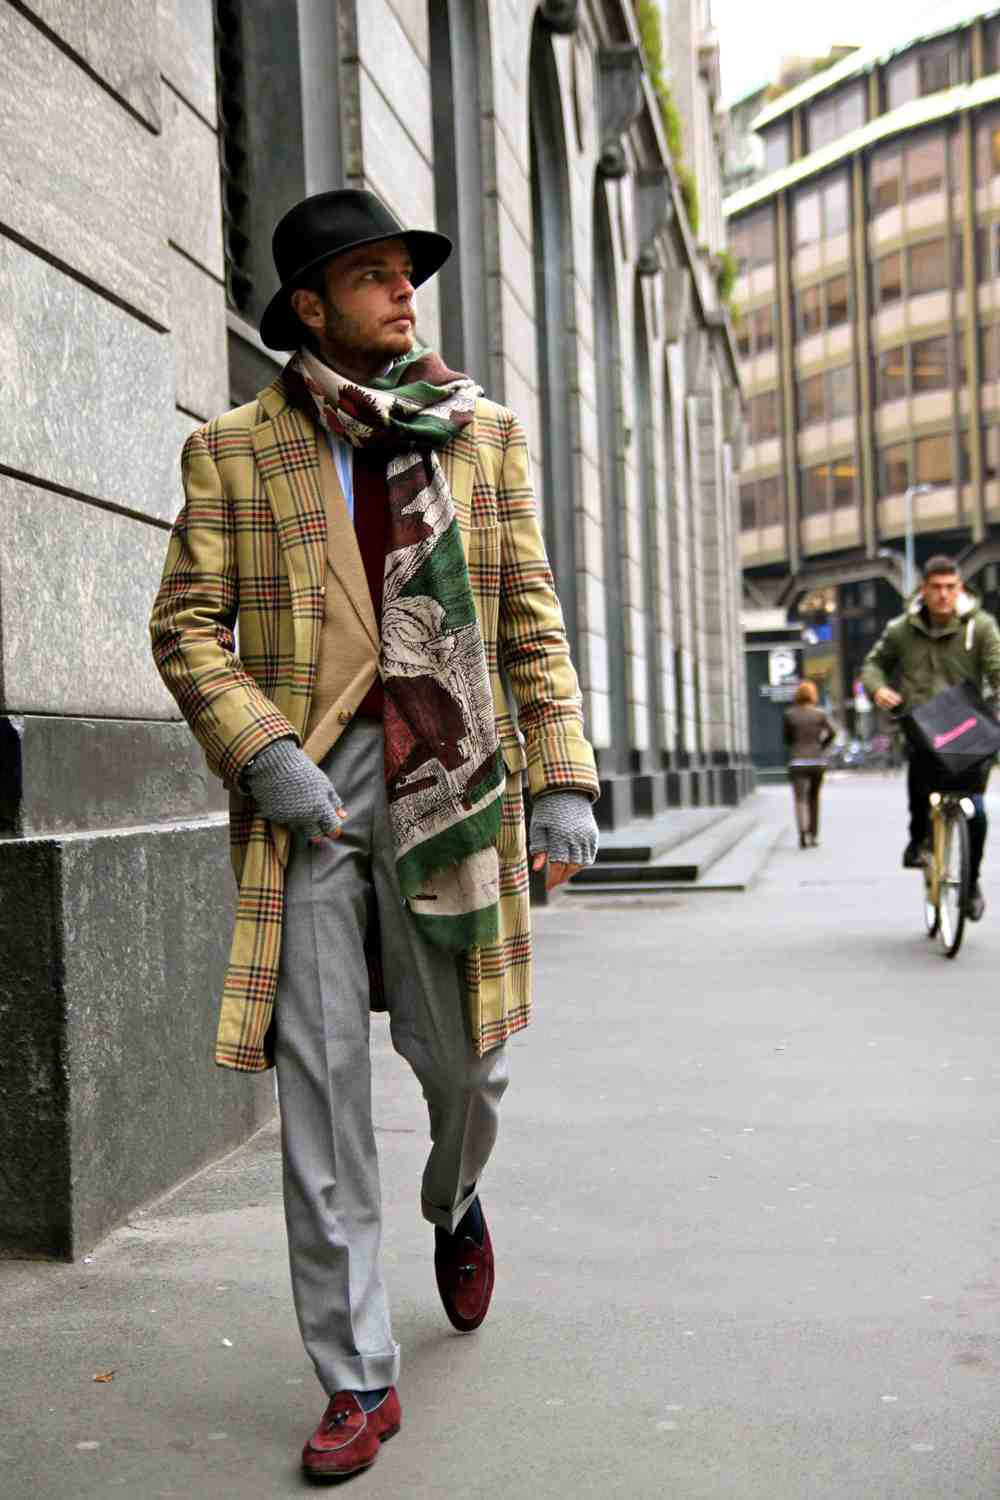 Green-Fumetto-Cashmere-Scarf-Marphy-shoe-Bordeaux-men-style-lookbook-street.jpg